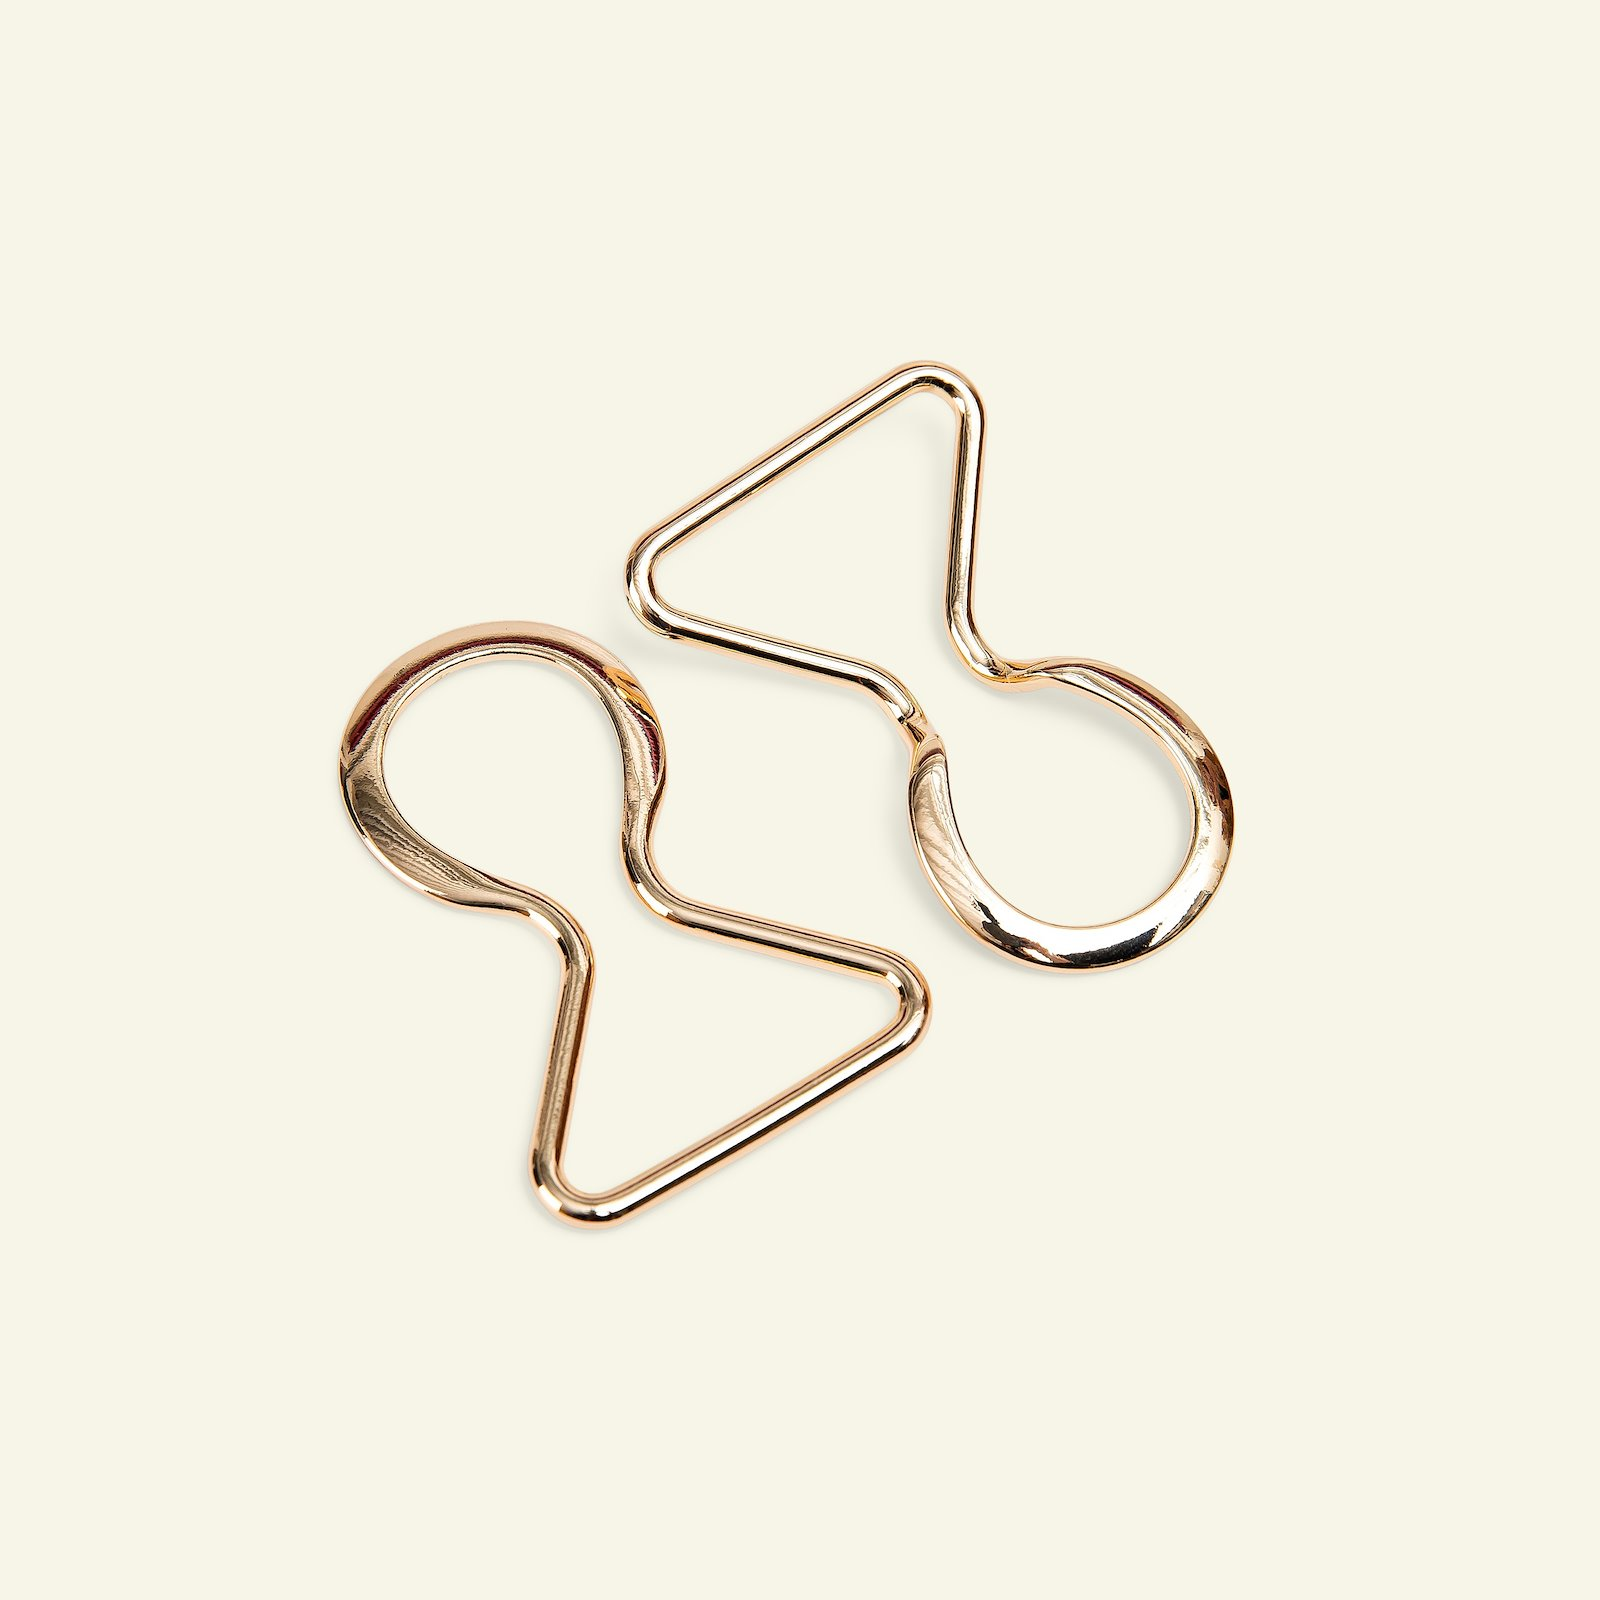 Beltbuckle metal 35mm gold 1pc 43232_pack